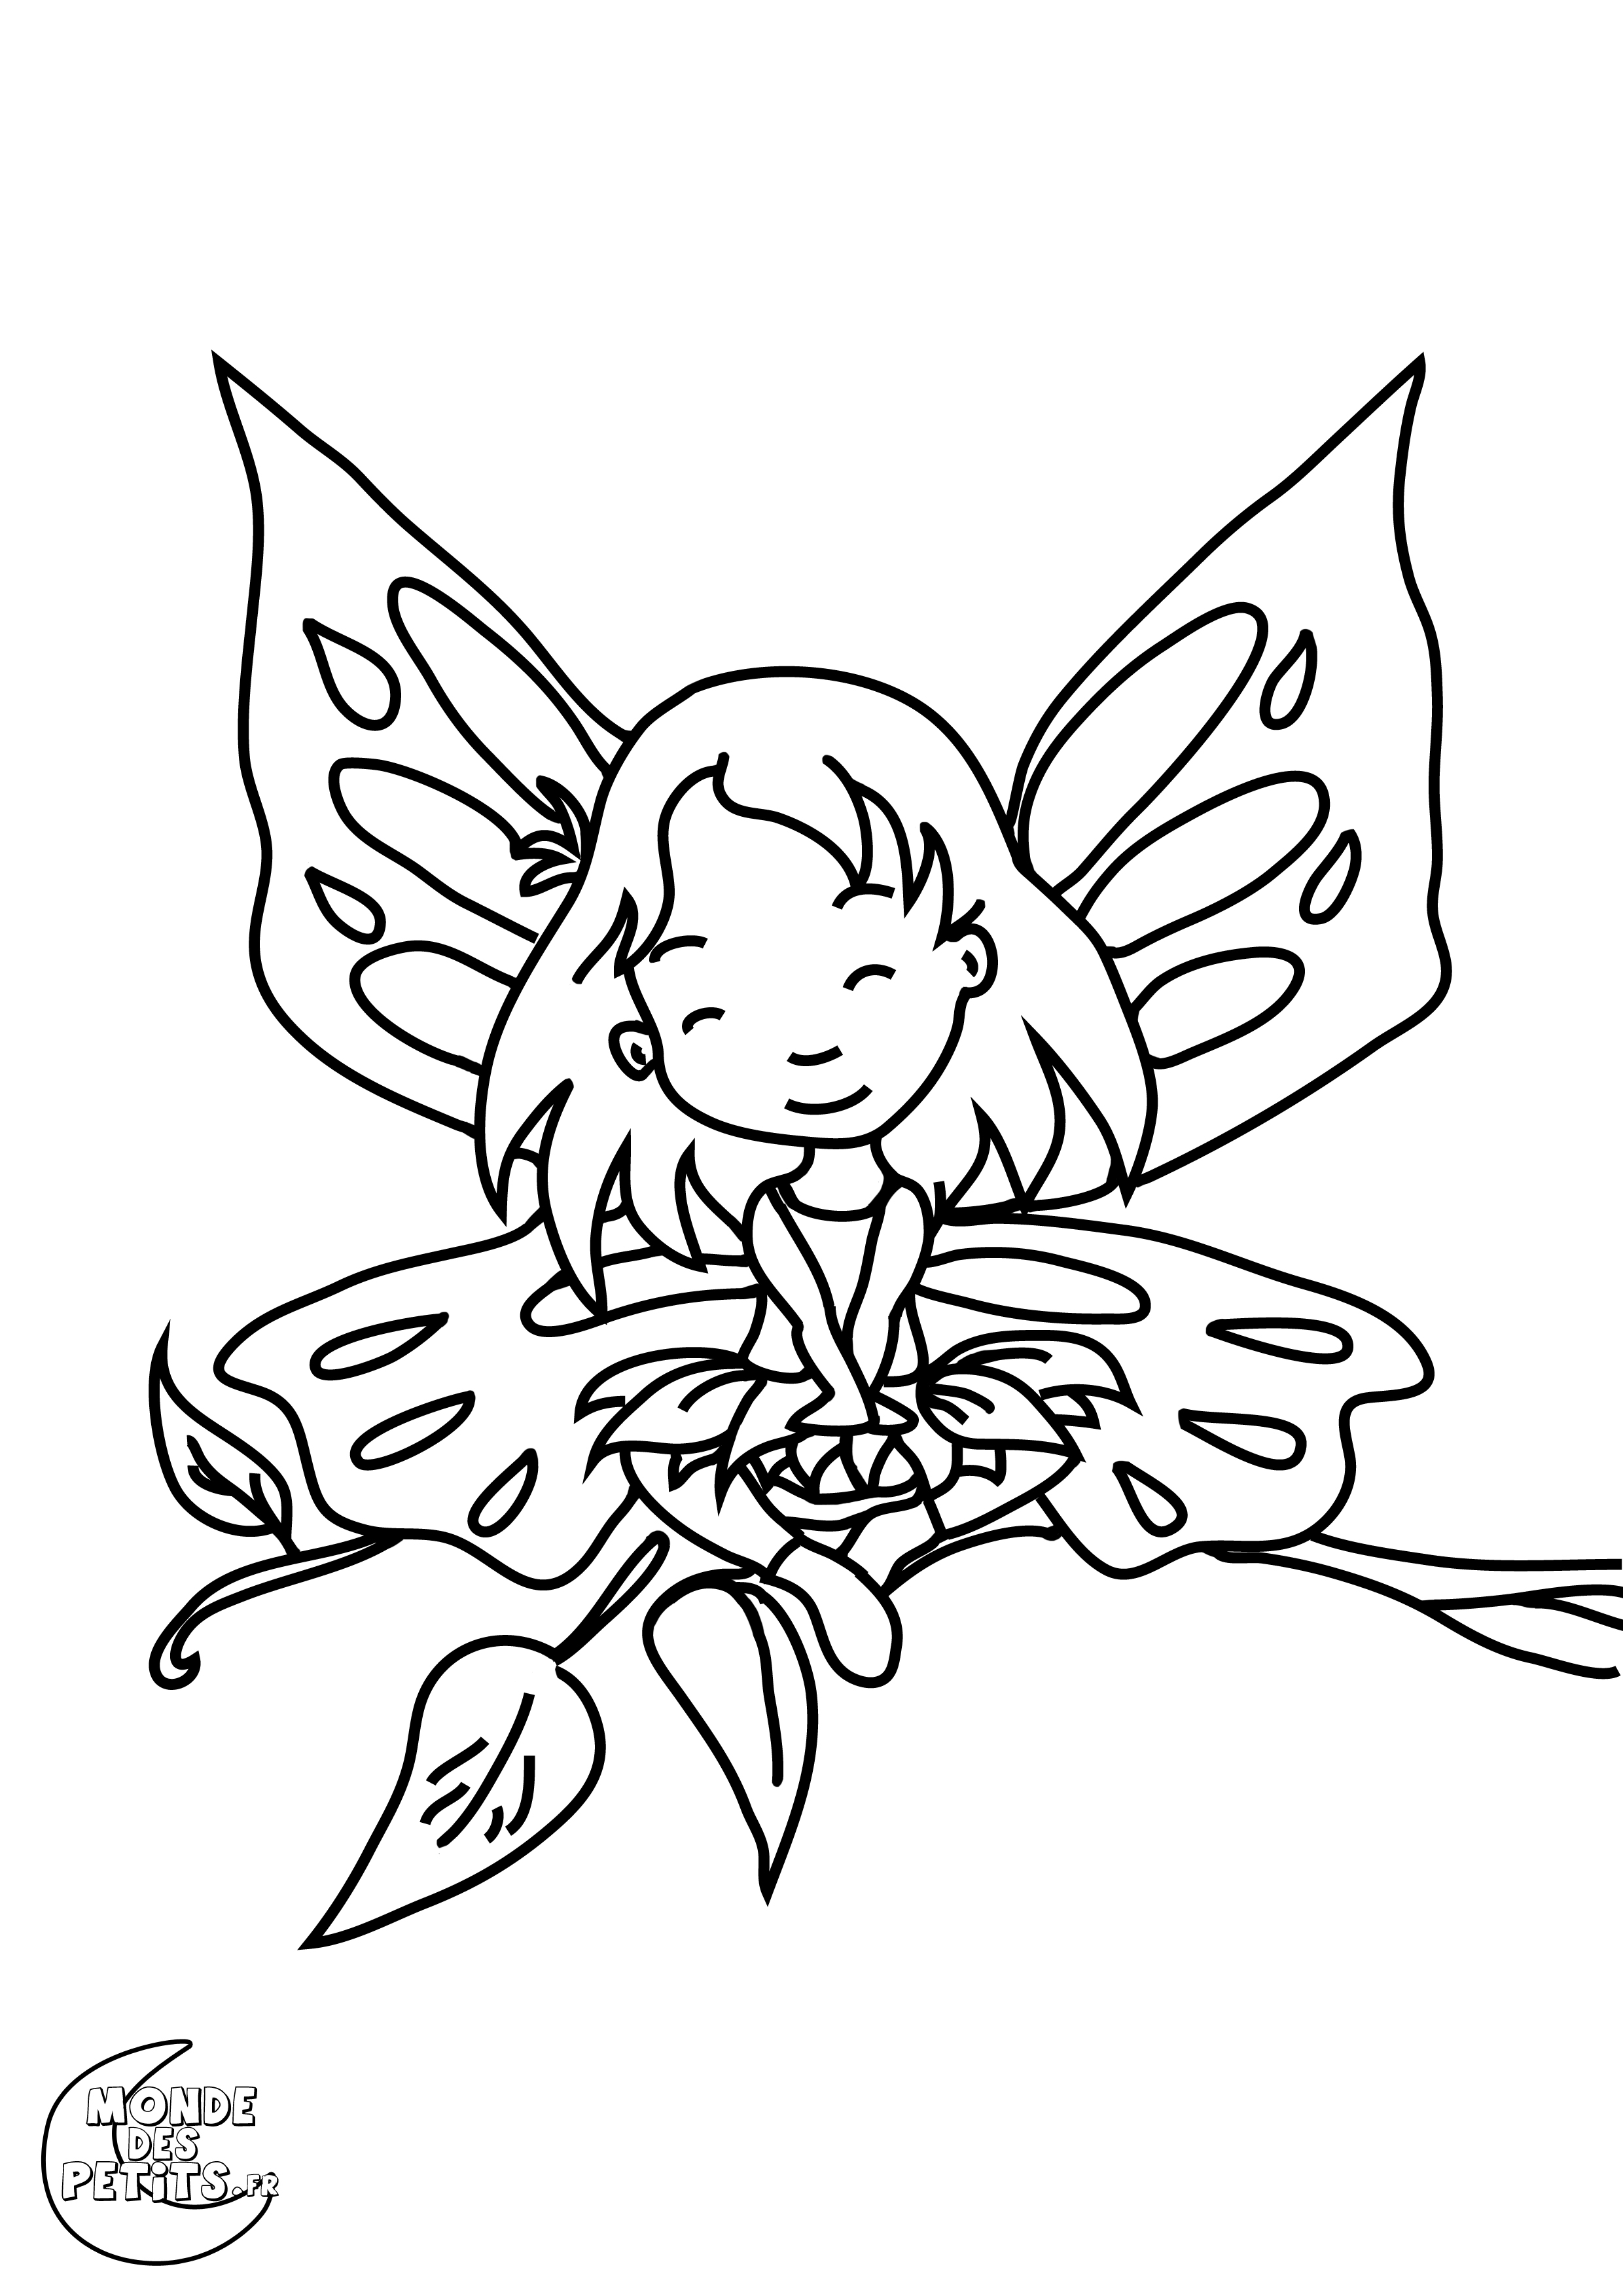 15 coloriage fee clochette fee des fleurs - Coloriage fee clochette ...